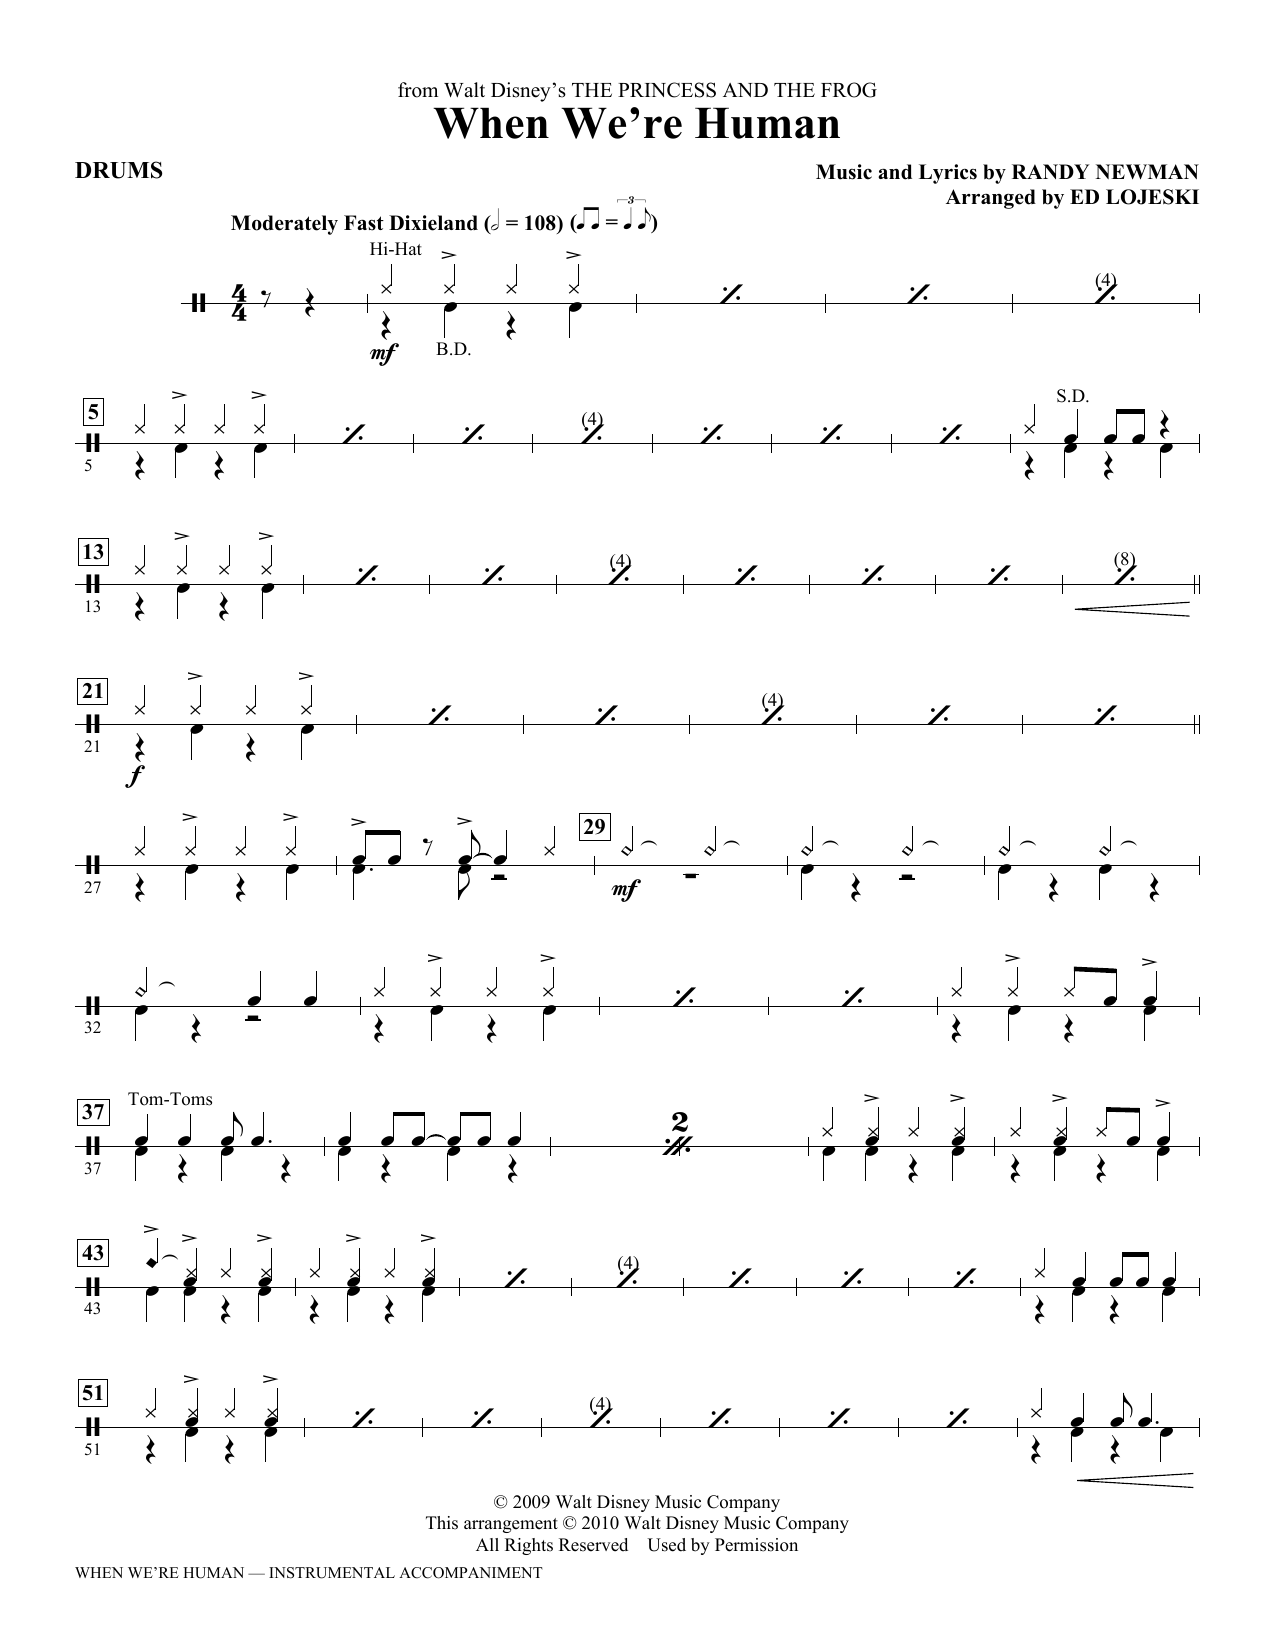 Ed Lojeski When We're Human (from The Princess And The Frog) - Drums sheet music notes printable PDF score